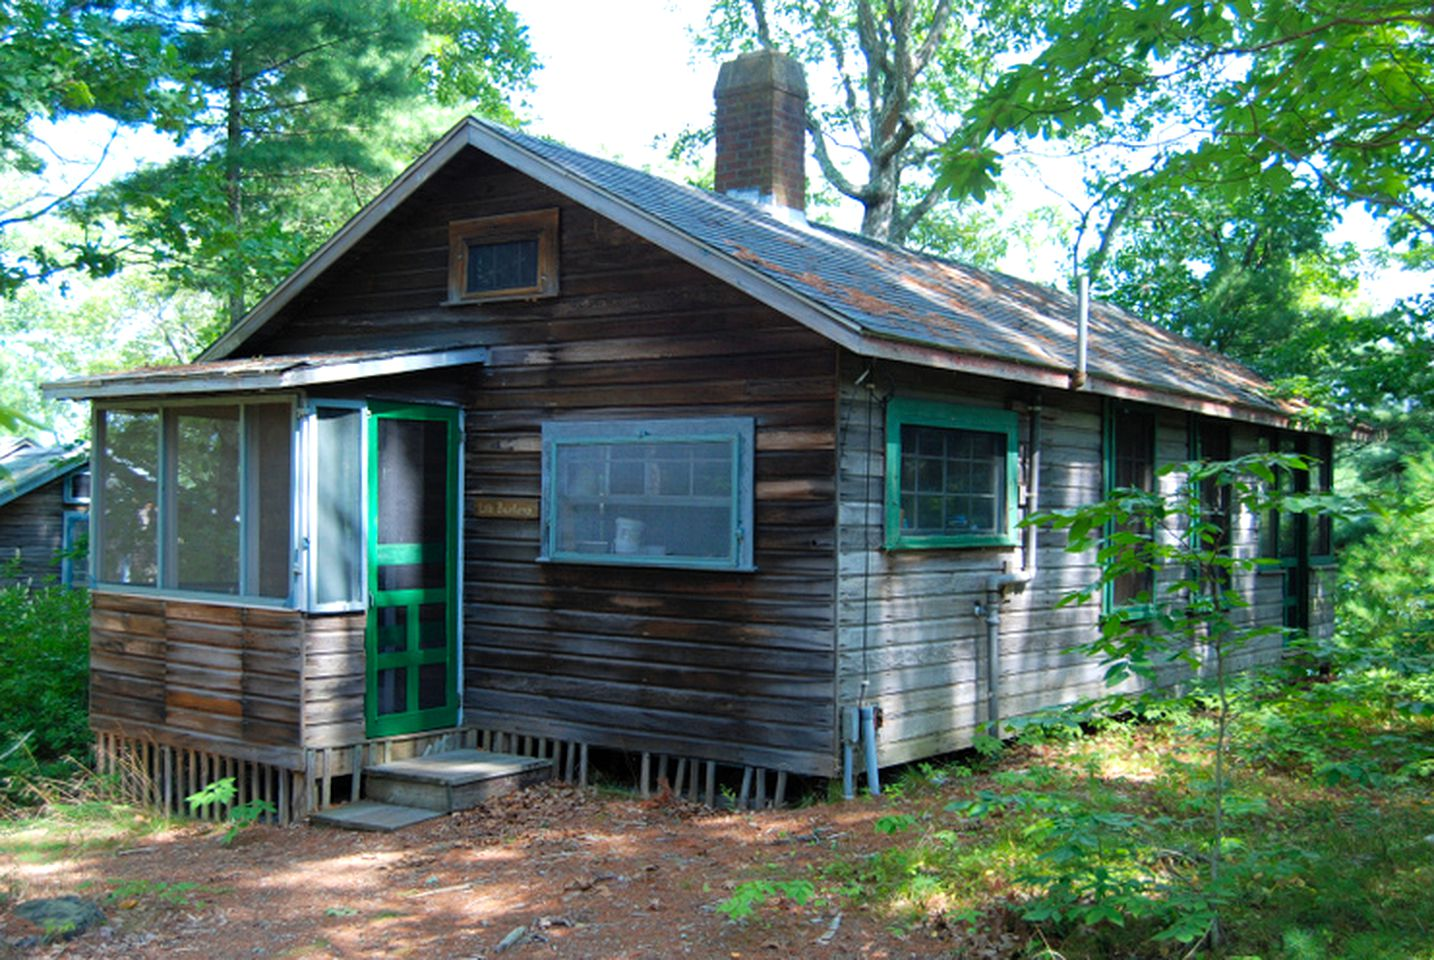 Cabins (Plymouth, Massachusetts, United States)